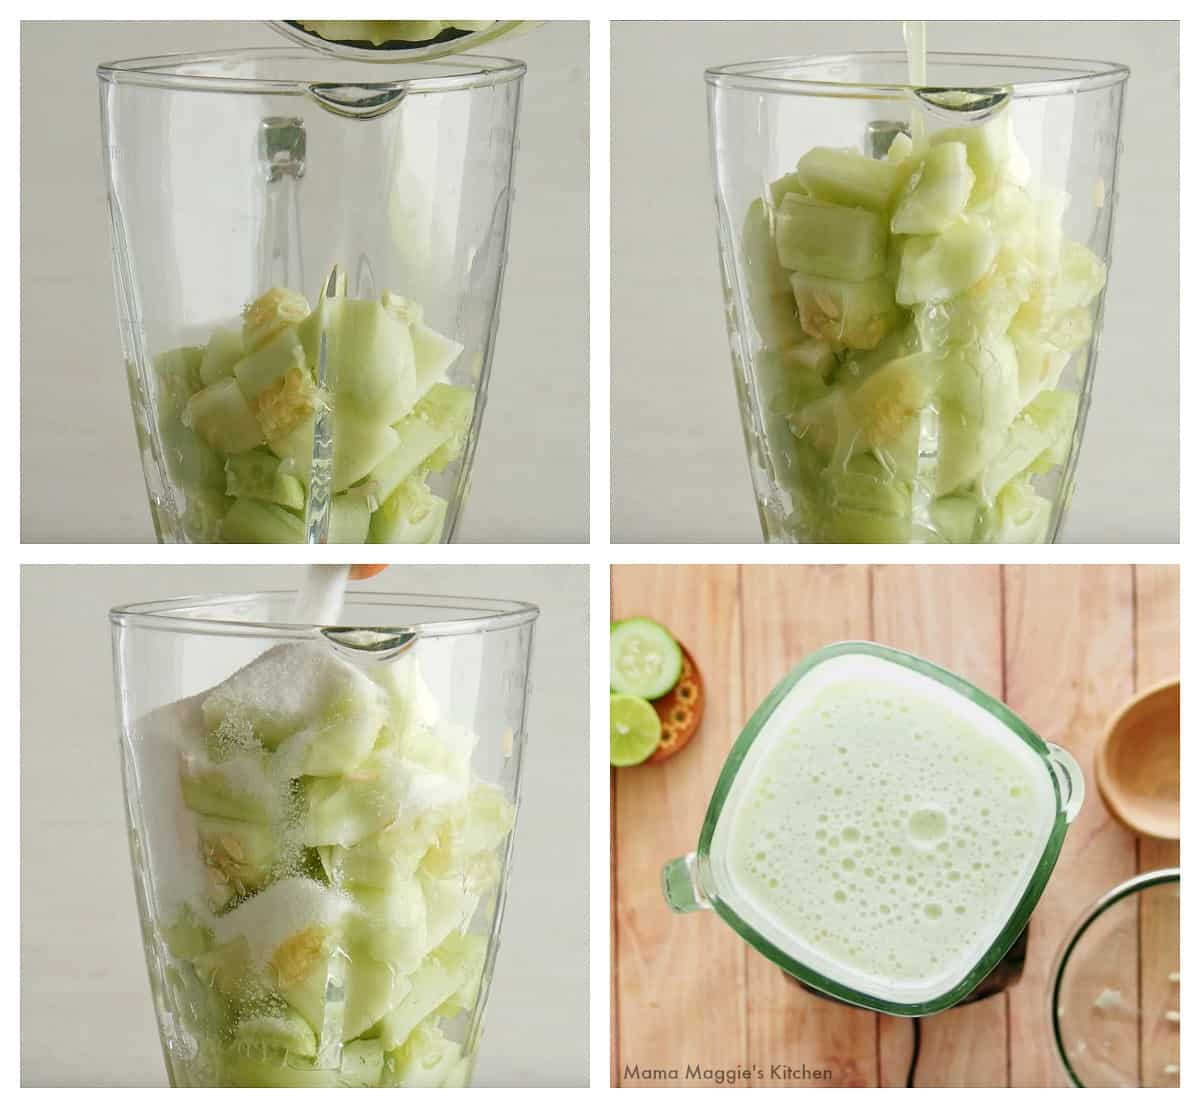 A collage showing how to make cucumber lime agua fresca in a blender.